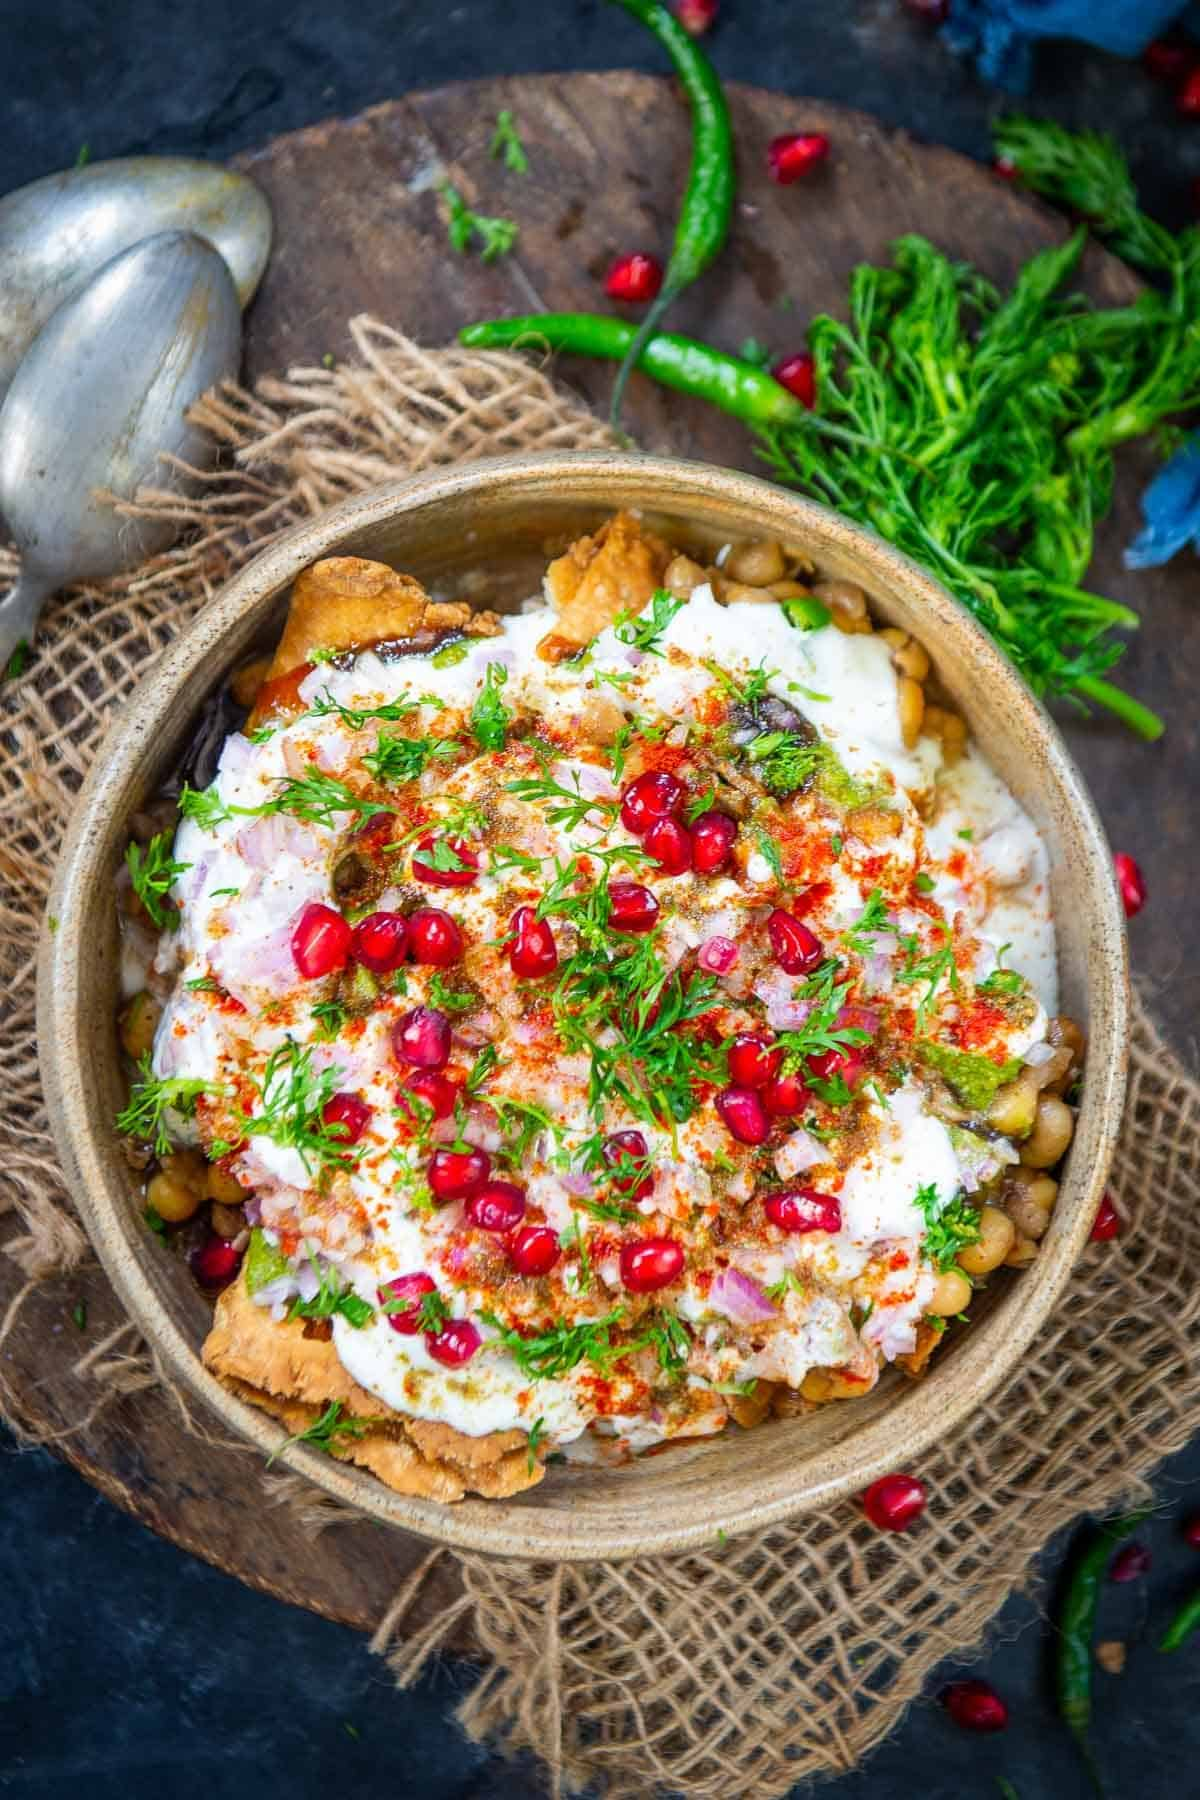 Samosa Chaat served on a plate.